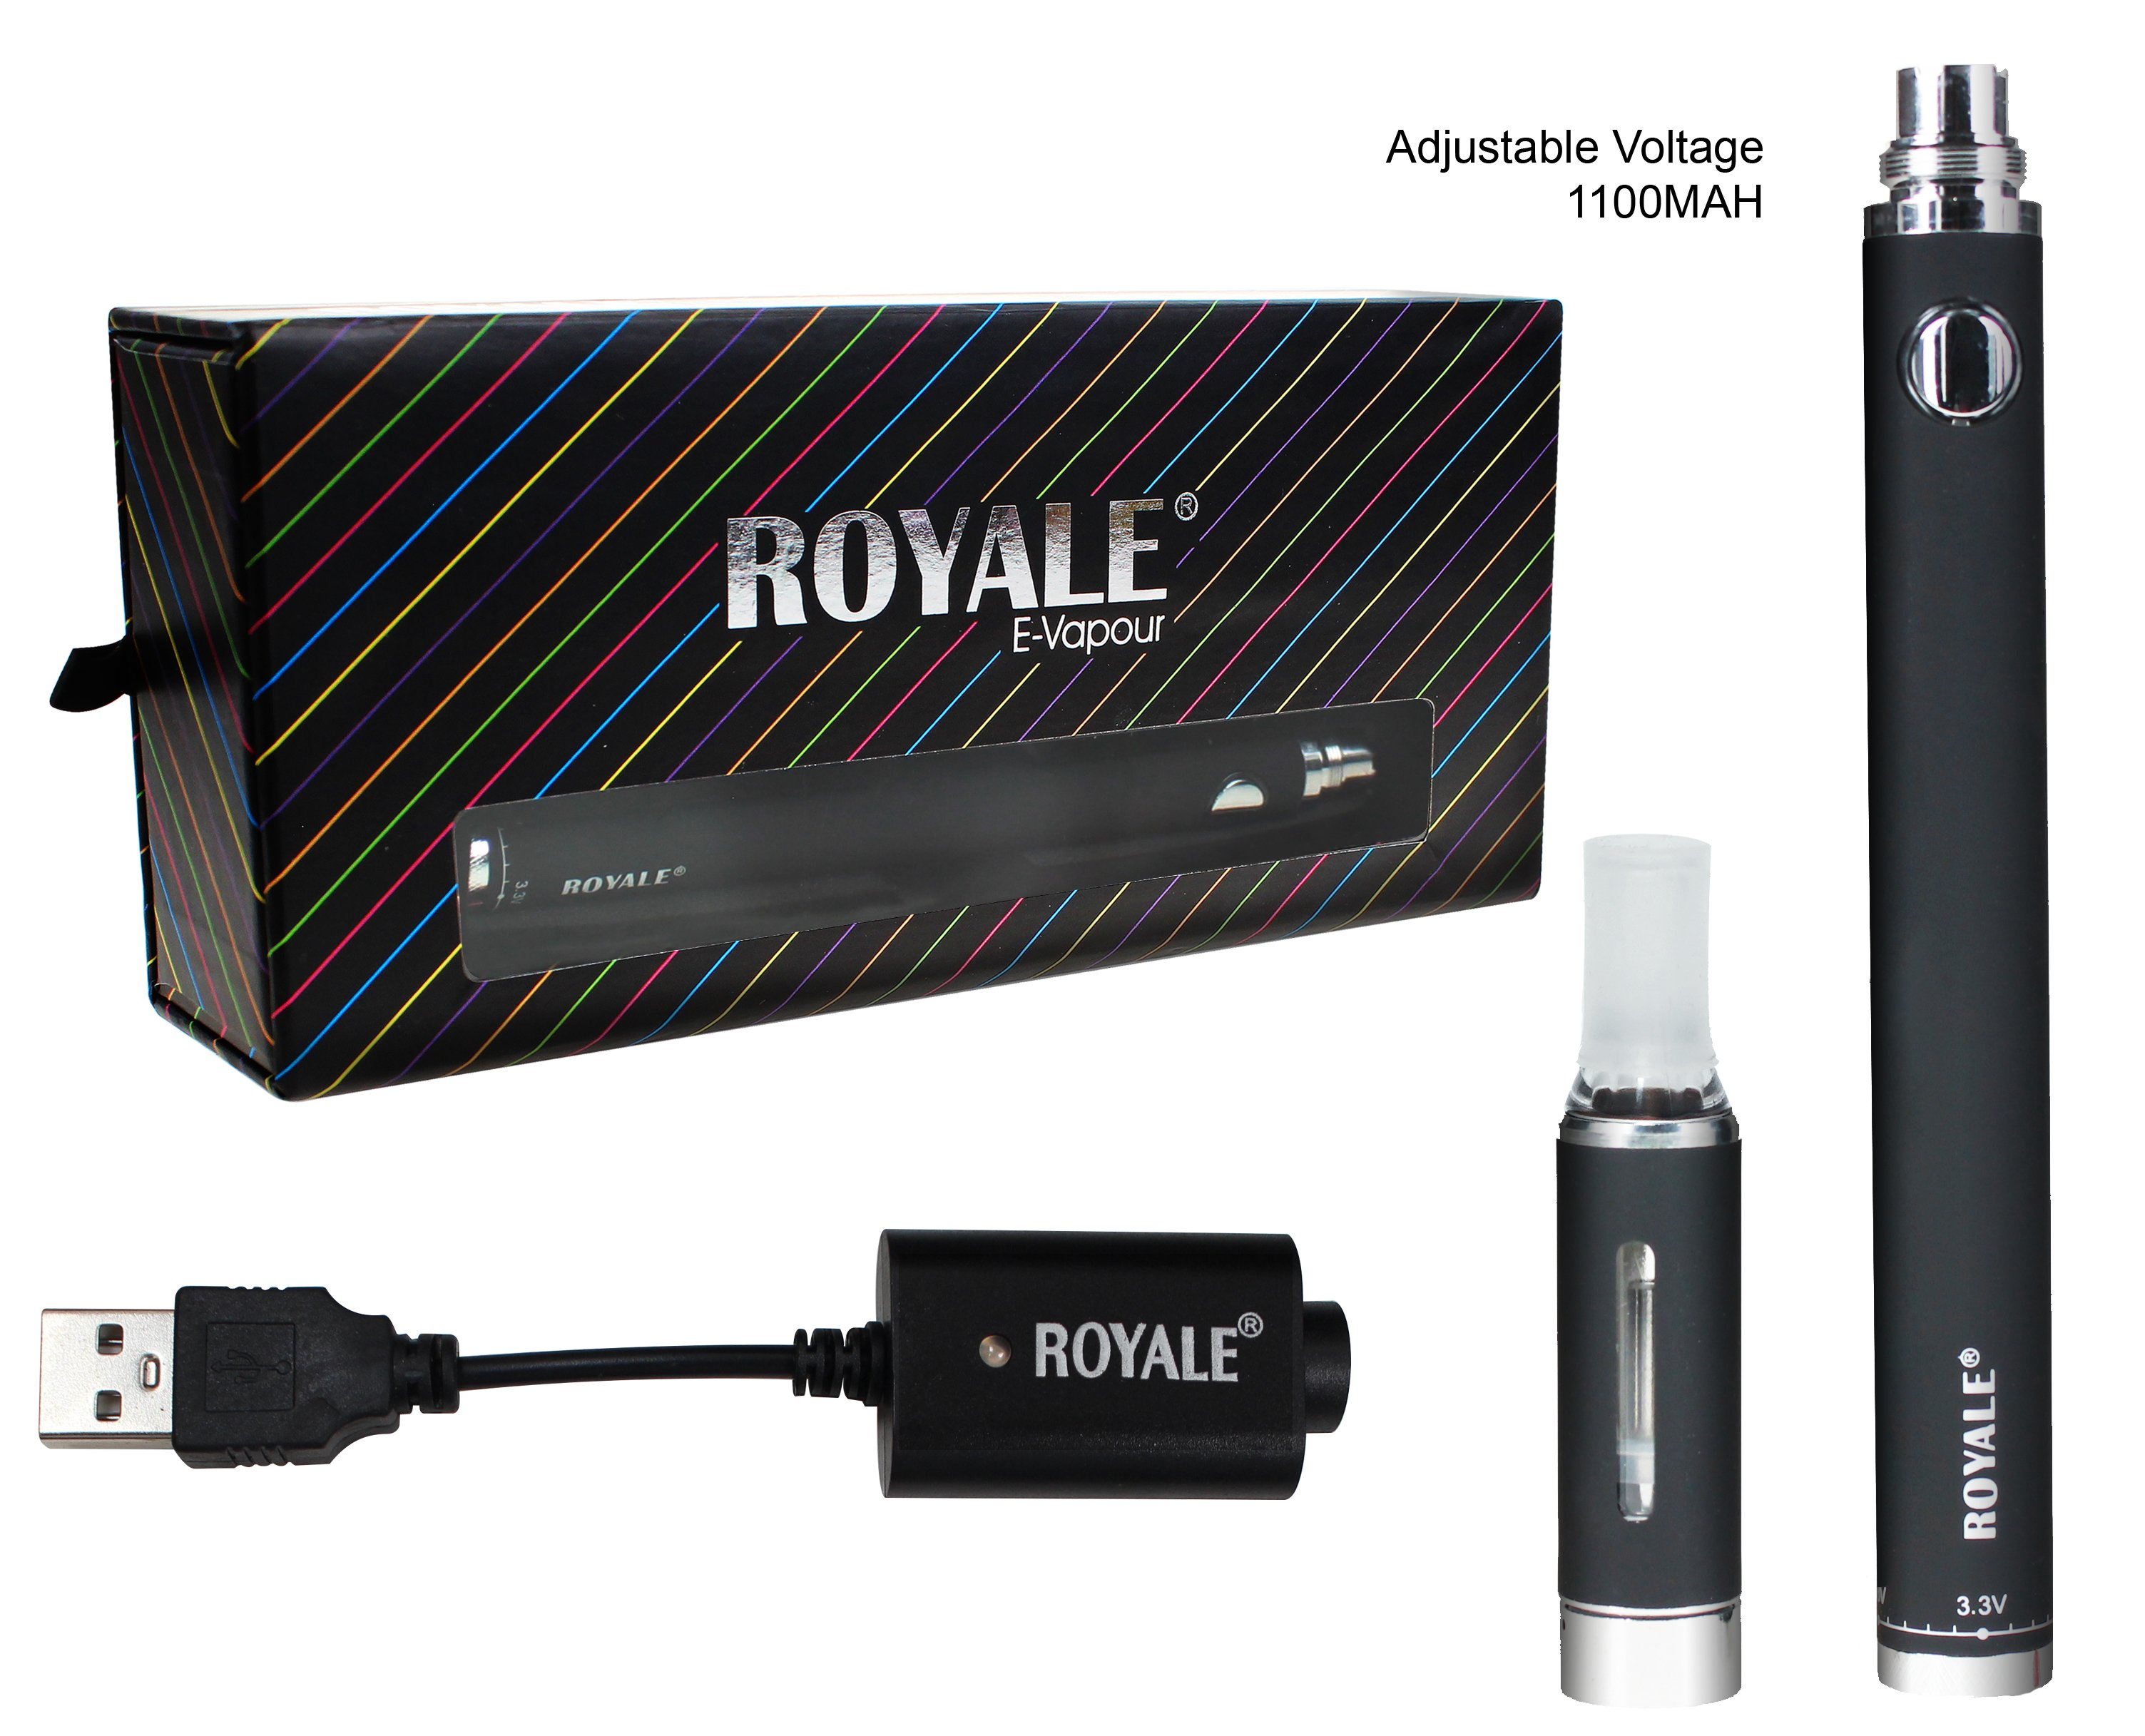 Royale Premium Adjustable Multi Voltage E-vapour  (1100 MAH)